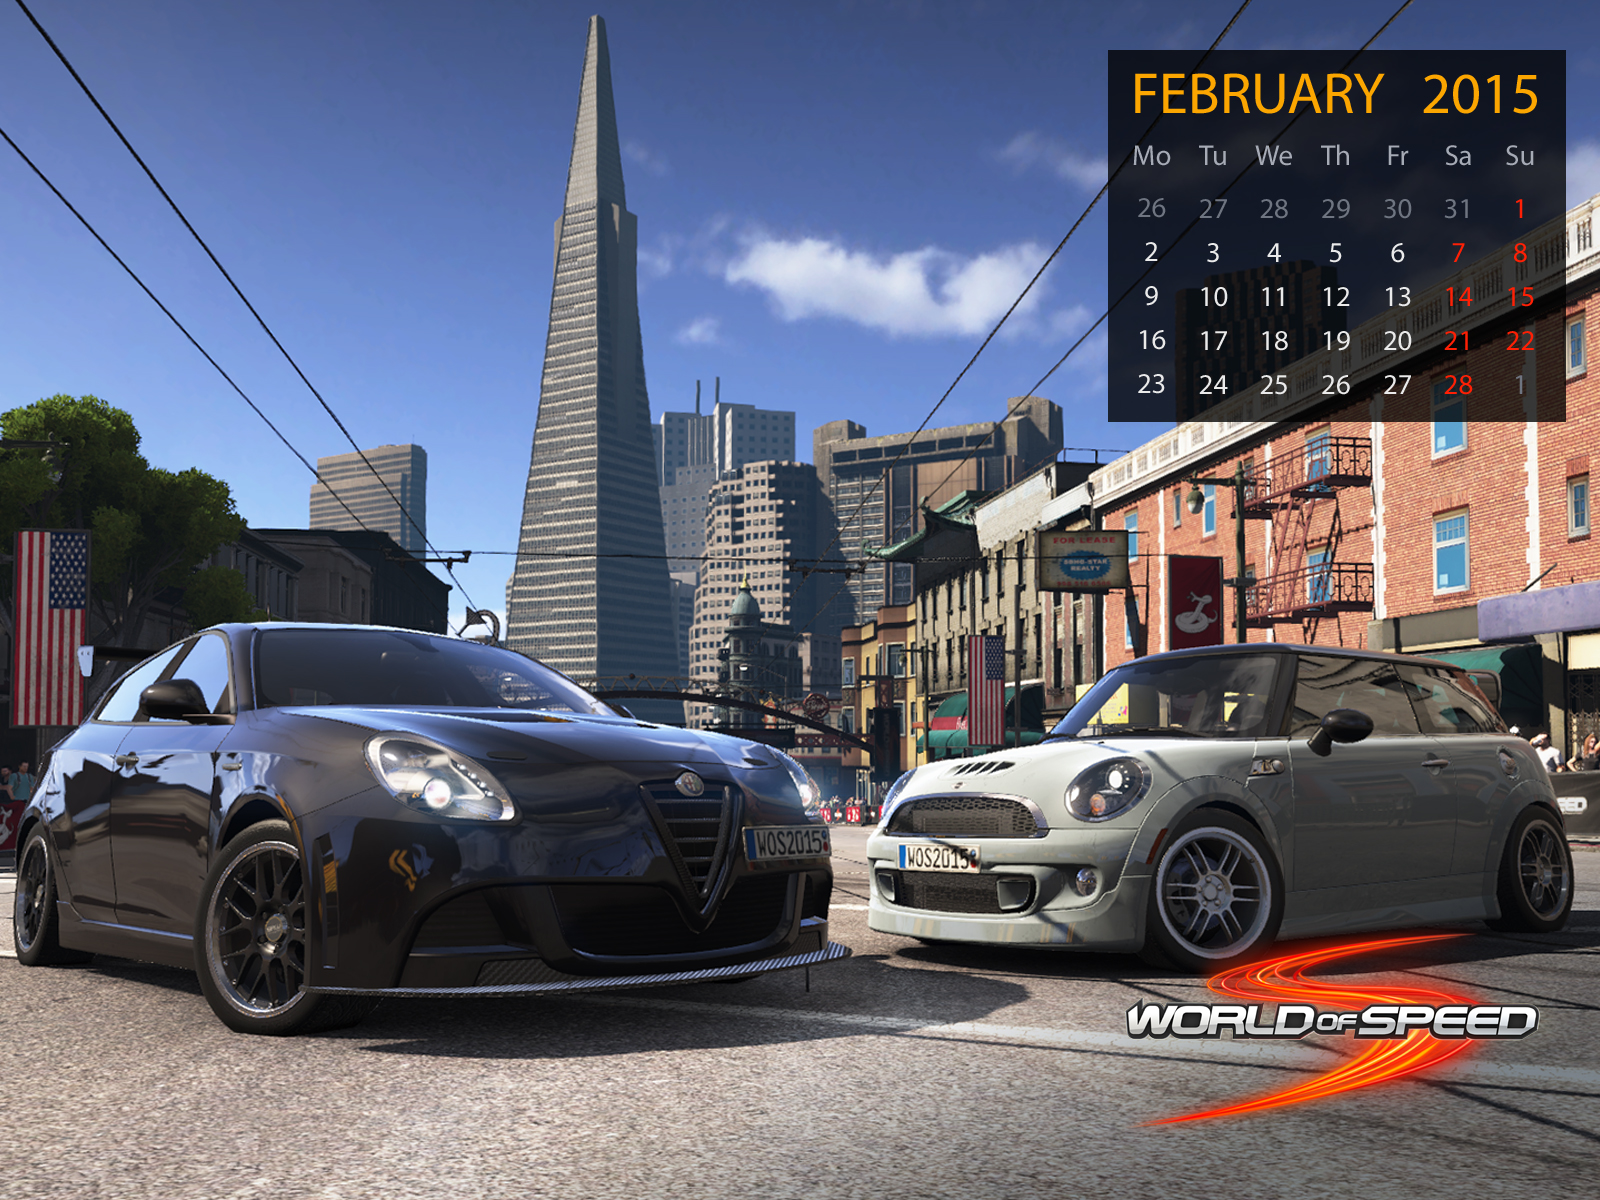 World of Speed February Wallpapers 1600x1200